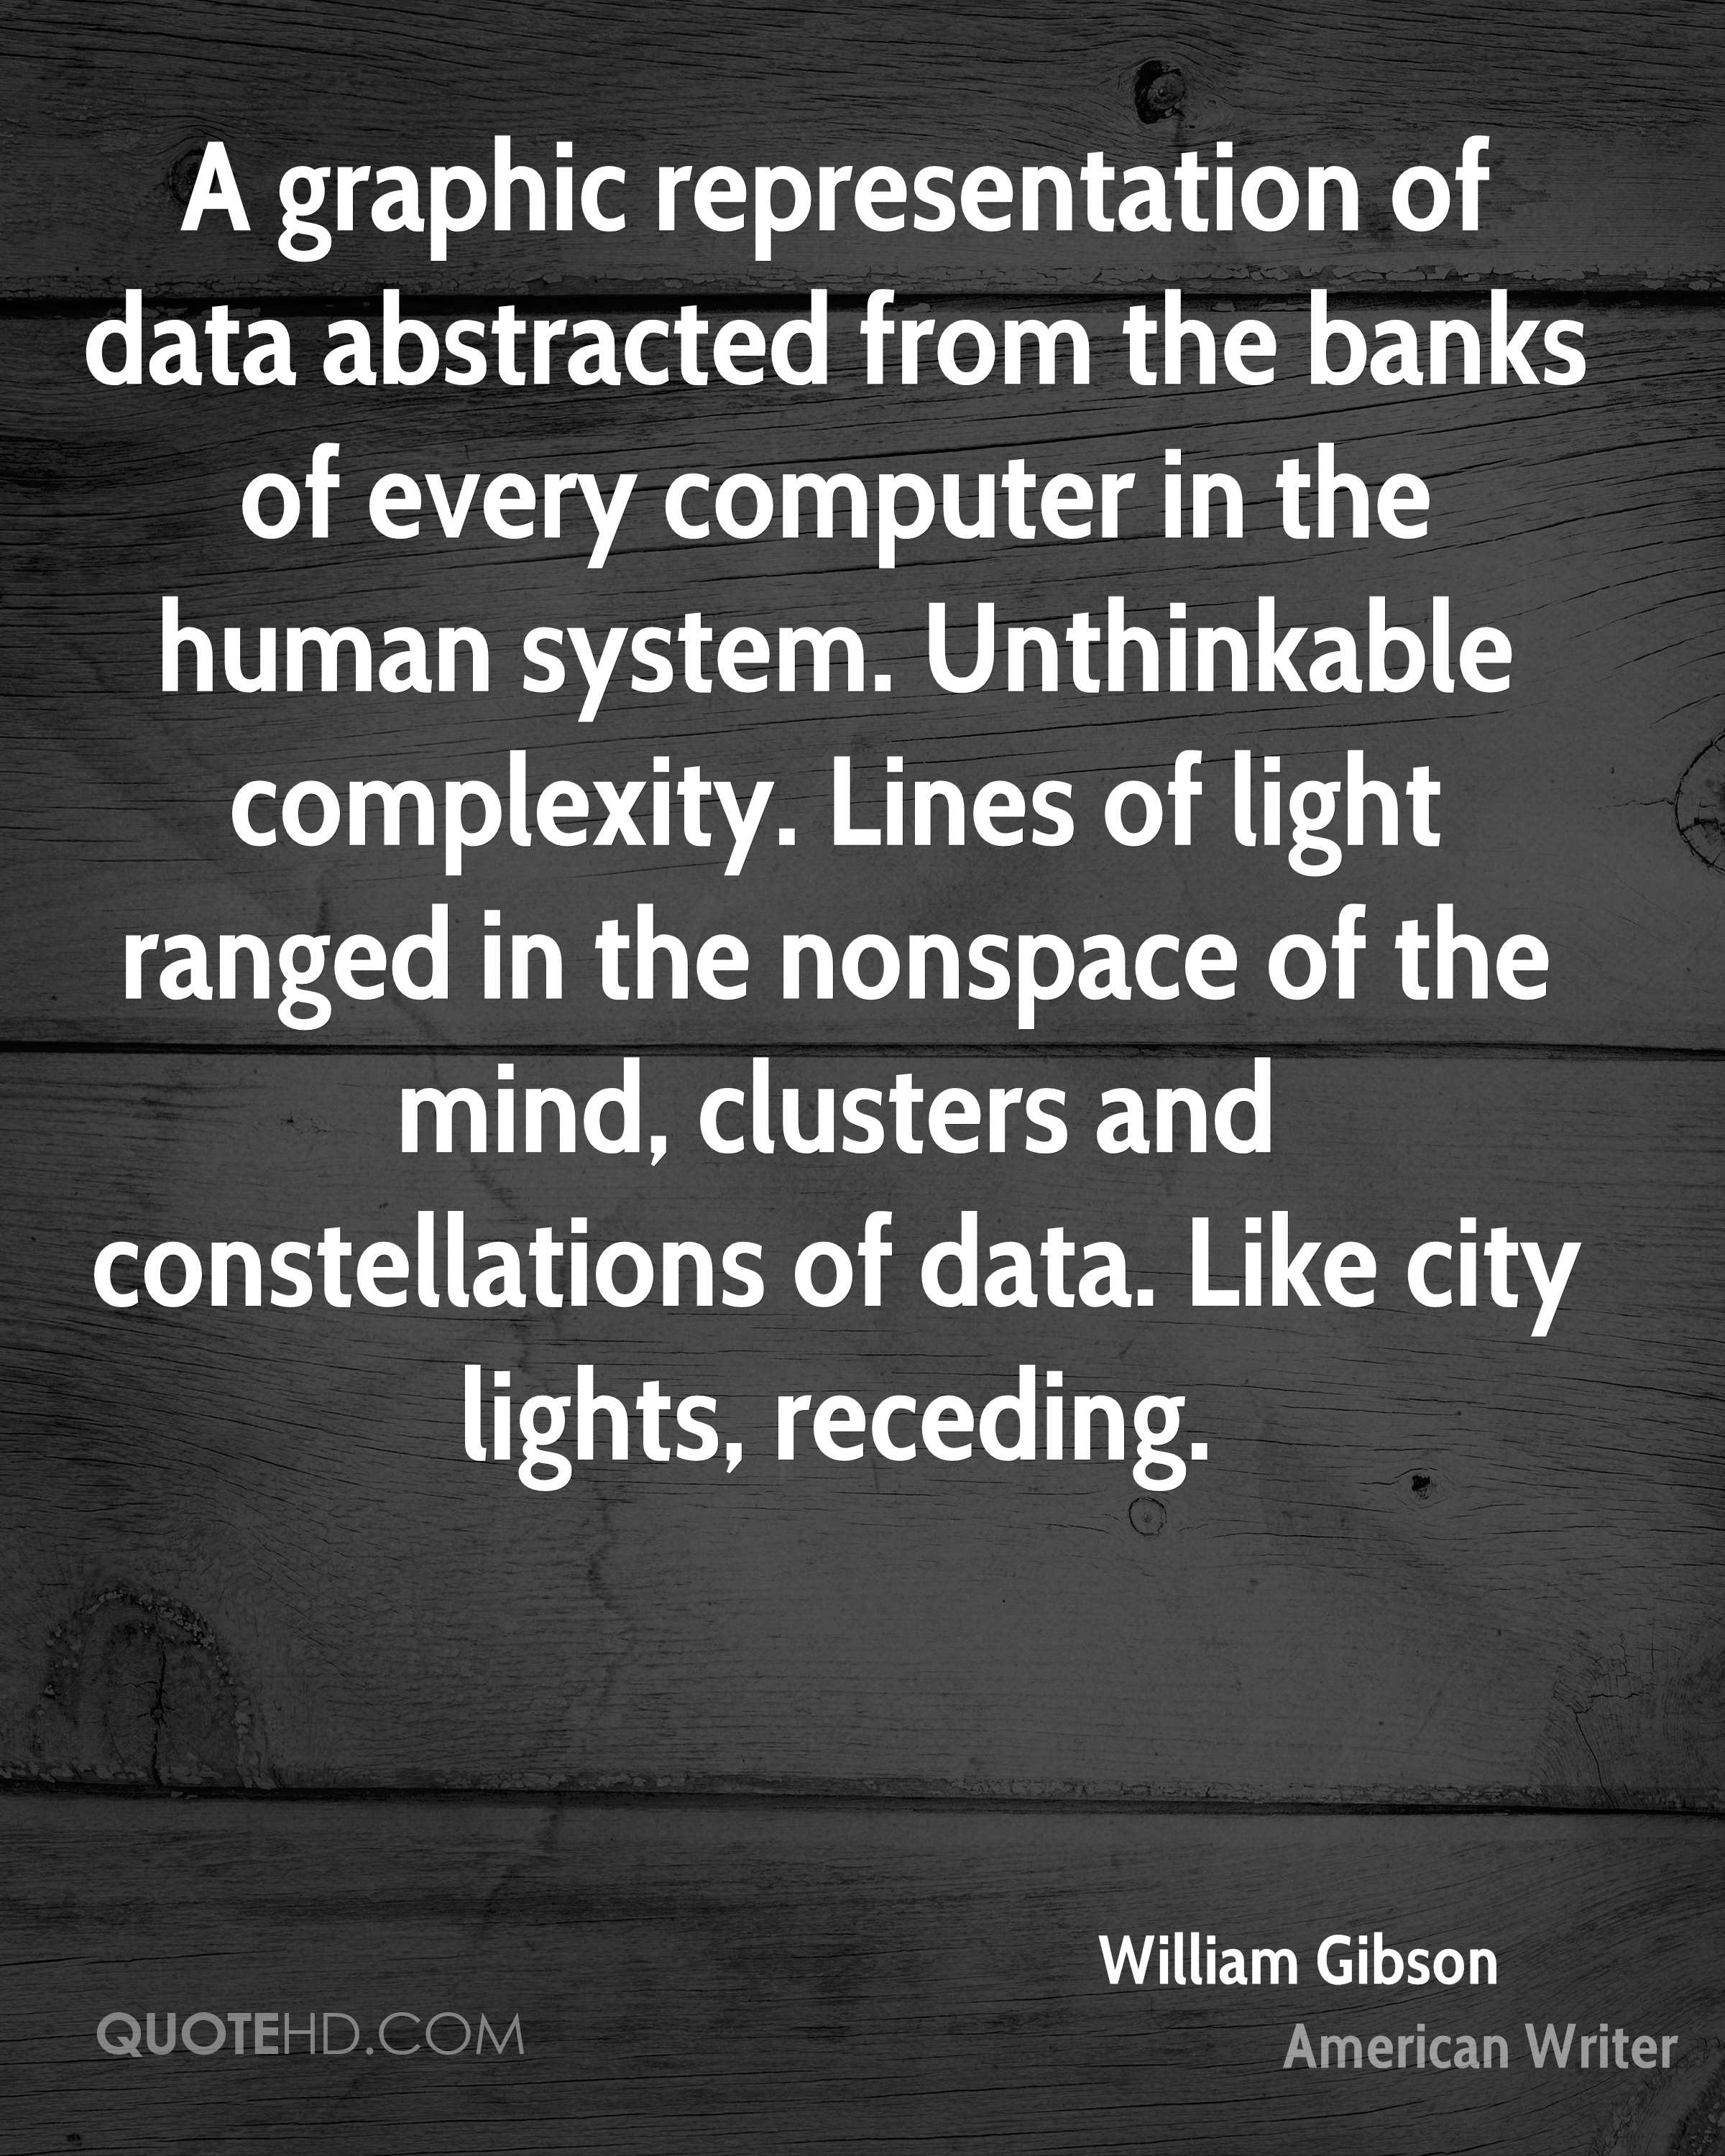 A graphic representation of data abstracted from the banks of every computer in the human system. Unthinkable complexity. Lines of light ranged in the nonspace of the mind, clusters and constellations of data. Like city lights, receding.